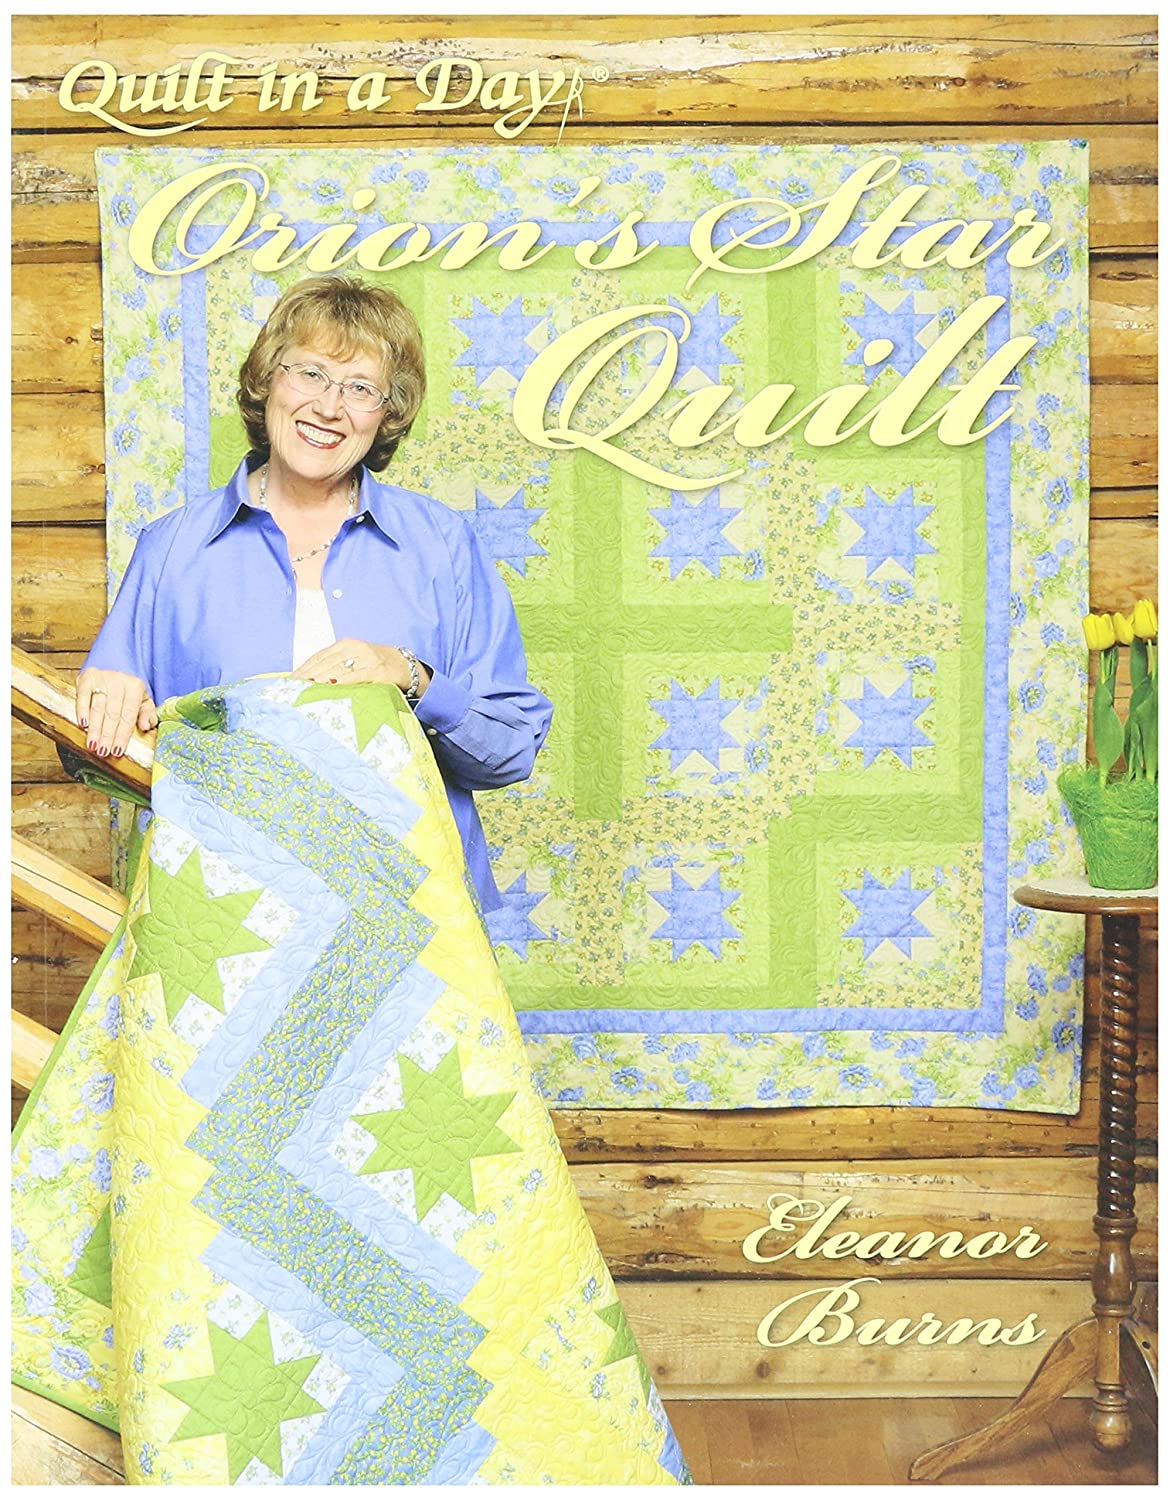 Quilt In A Day-Orion's Star Quilt Notions - In Network QD-1081